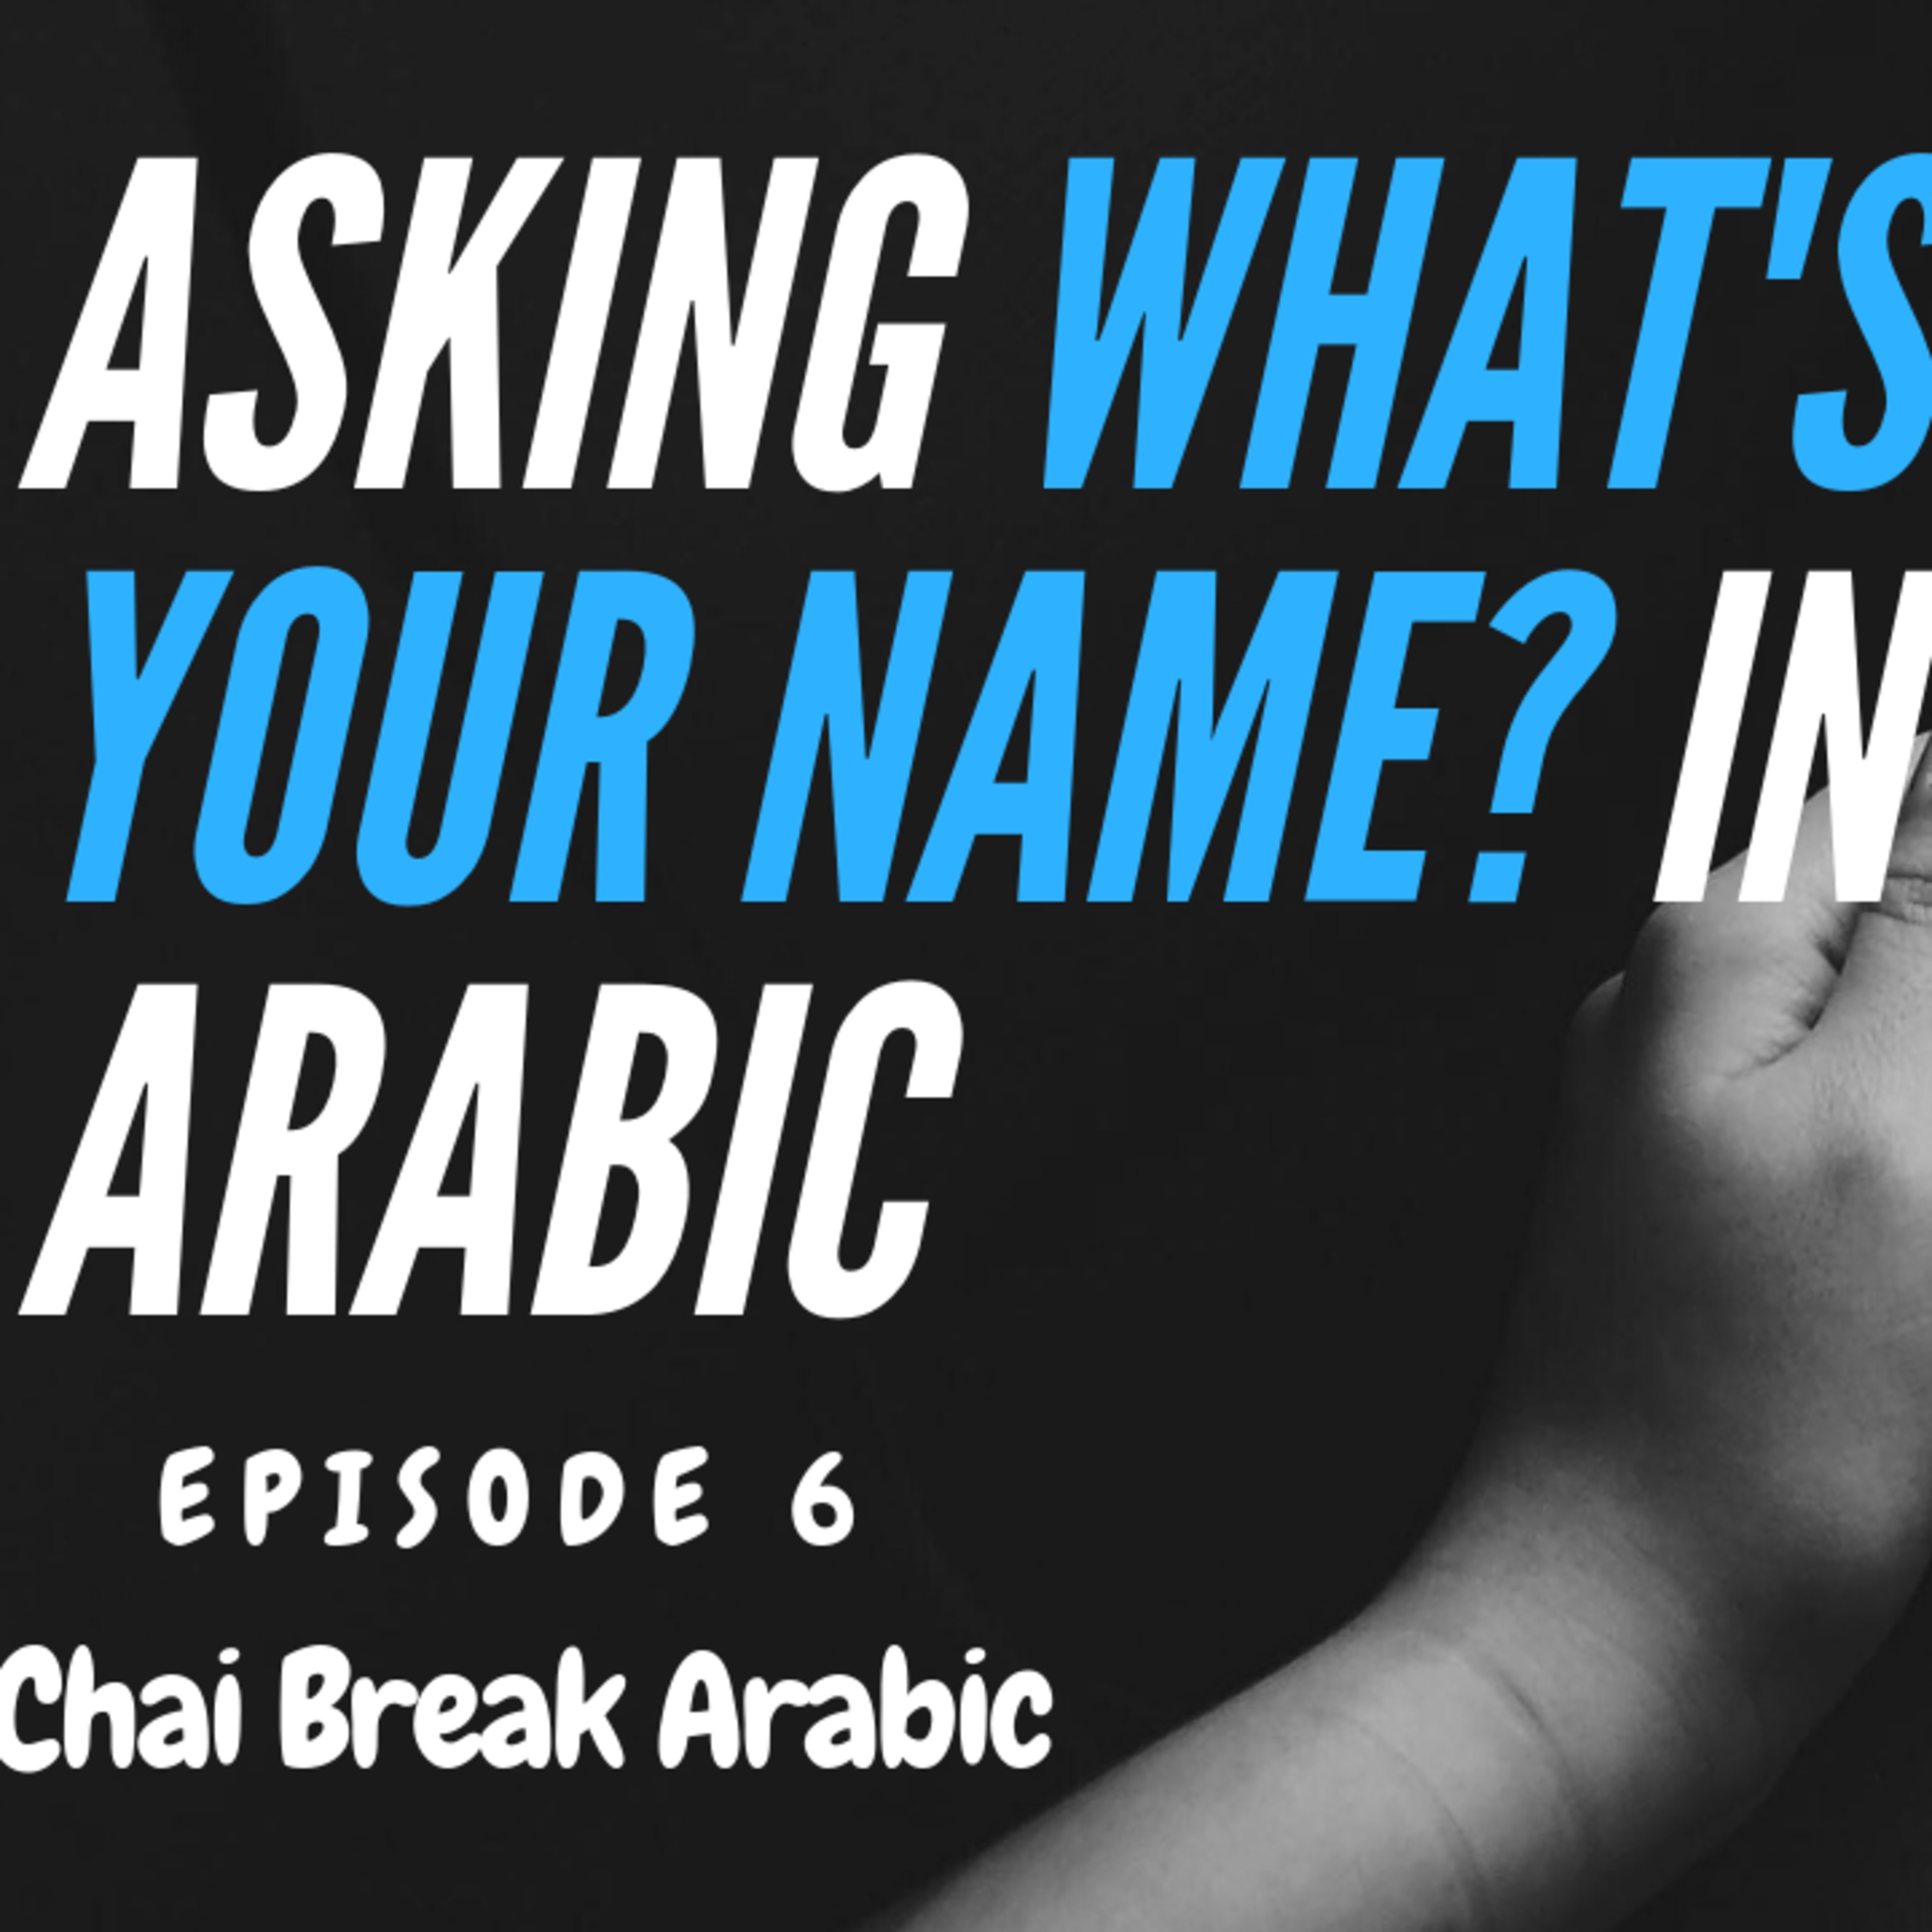 Asking What's Your Name? In Arabic - Episode 6 - Chai Break Arabic